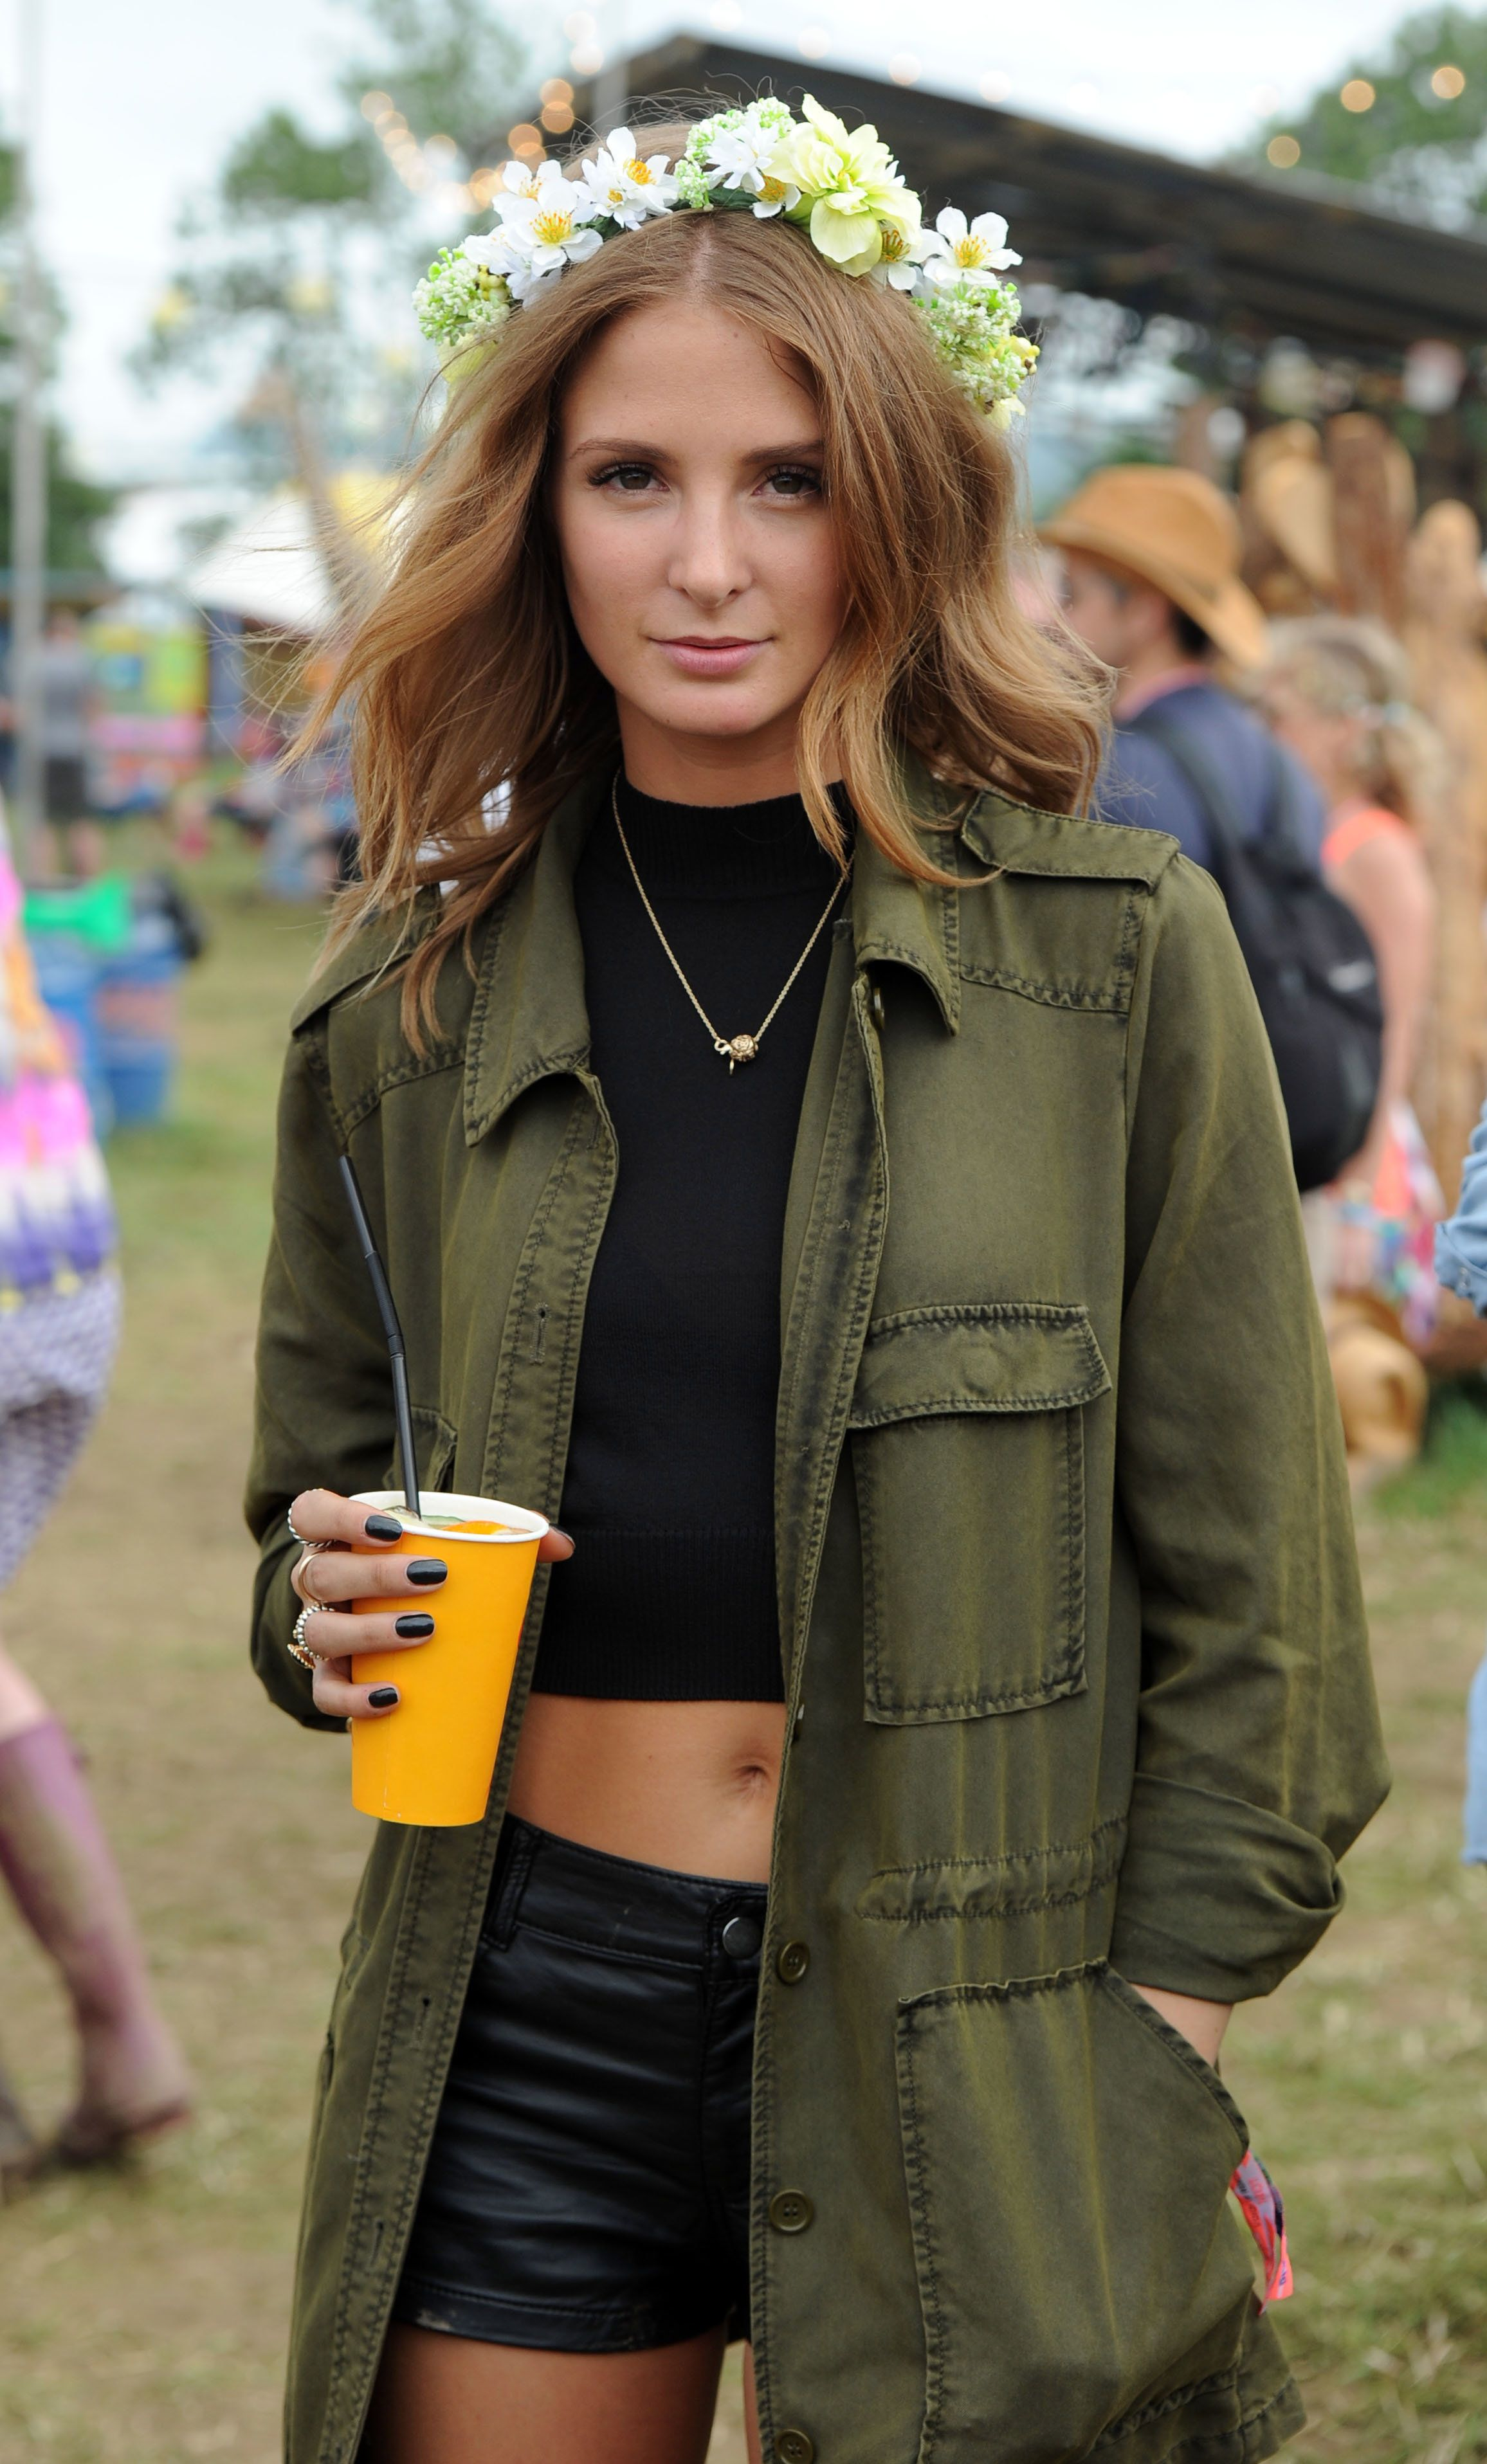 Millie Mackintosh Shares Her Festival Beauty Tips And Favourite